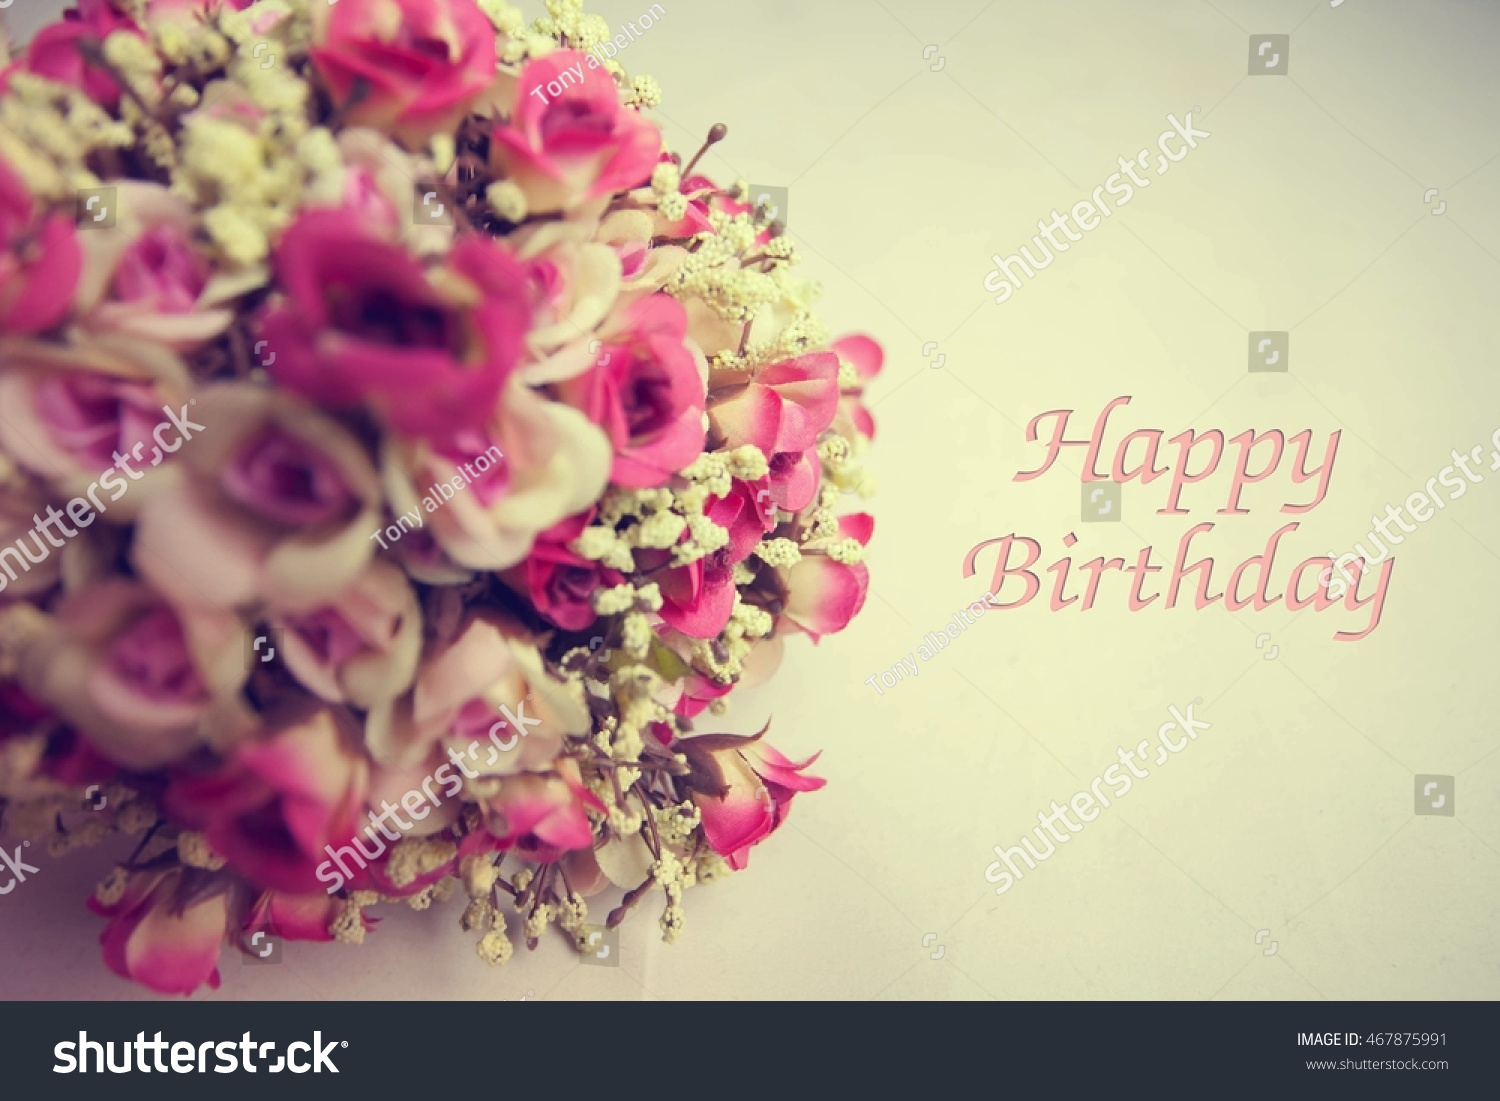 Vintage flowers card happy birthday holiday stock photo royalty vintage flowers and card happy birthday holiday background select focus blur background izmirmasajfo